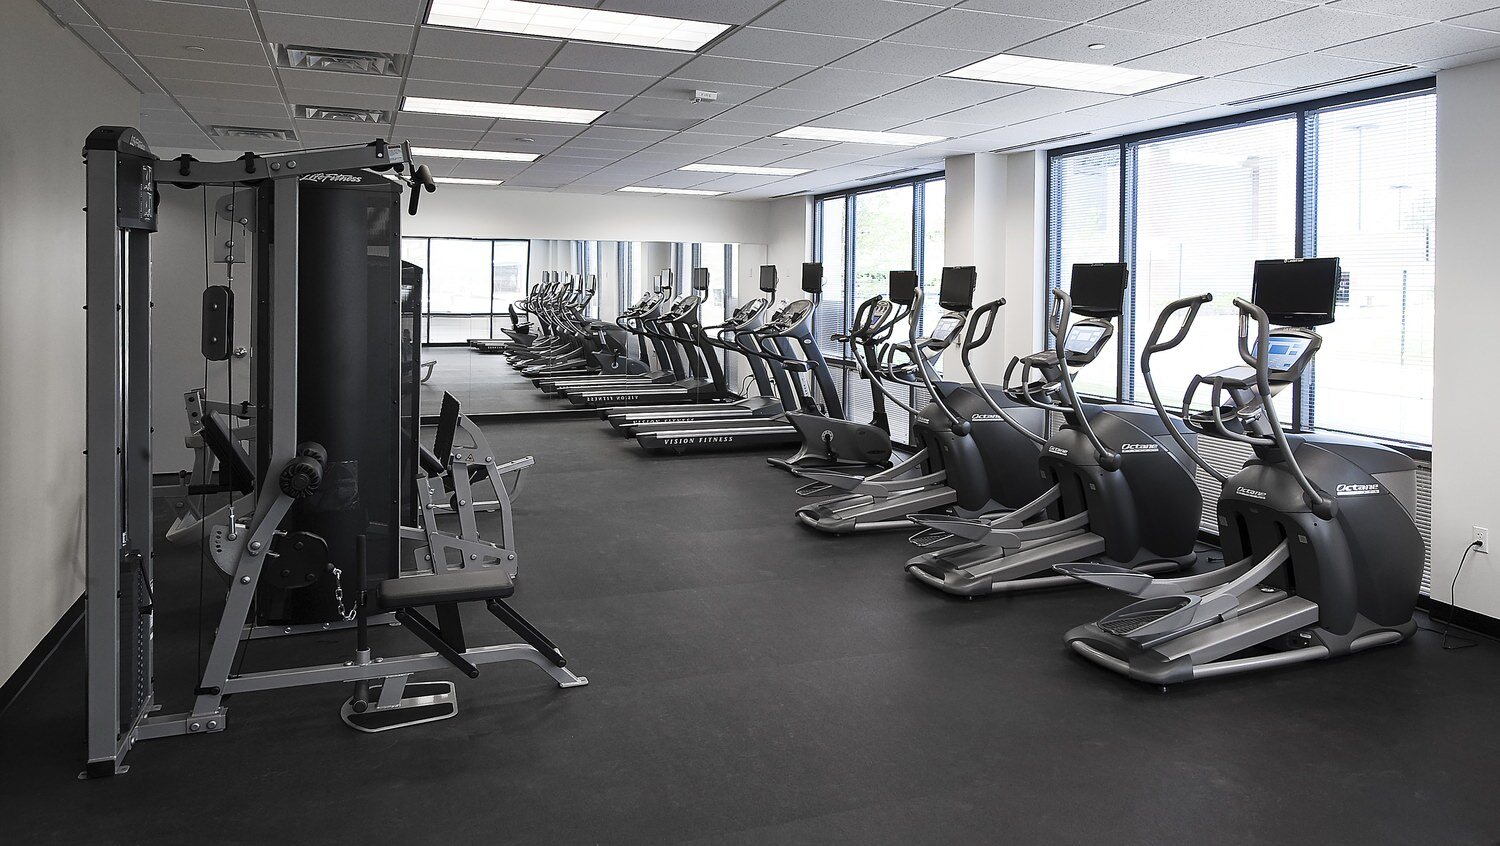 A lot of treadmills and elliptical machines that are located in a gym with rubber floors on it.